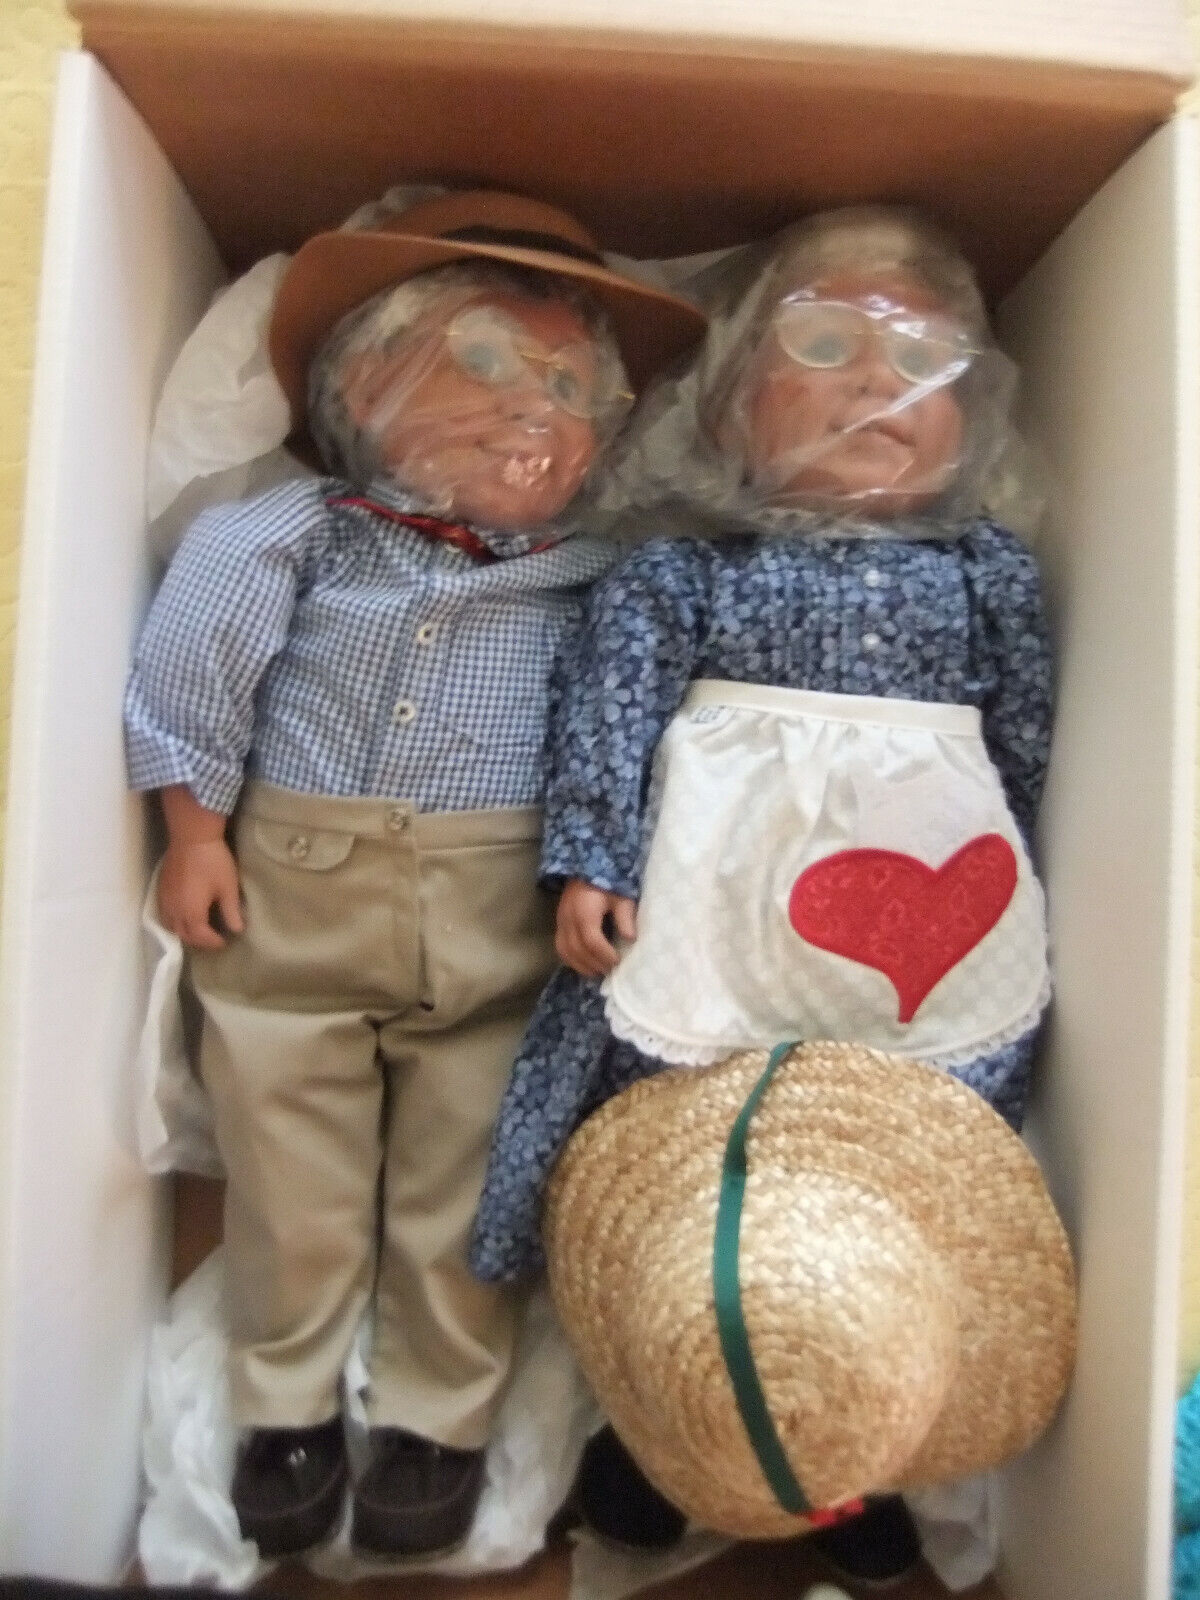 AUNT POLLY AND UNCLE PETE COLLECTIBLE DOLLS, NEW IN BOX. - $165.00